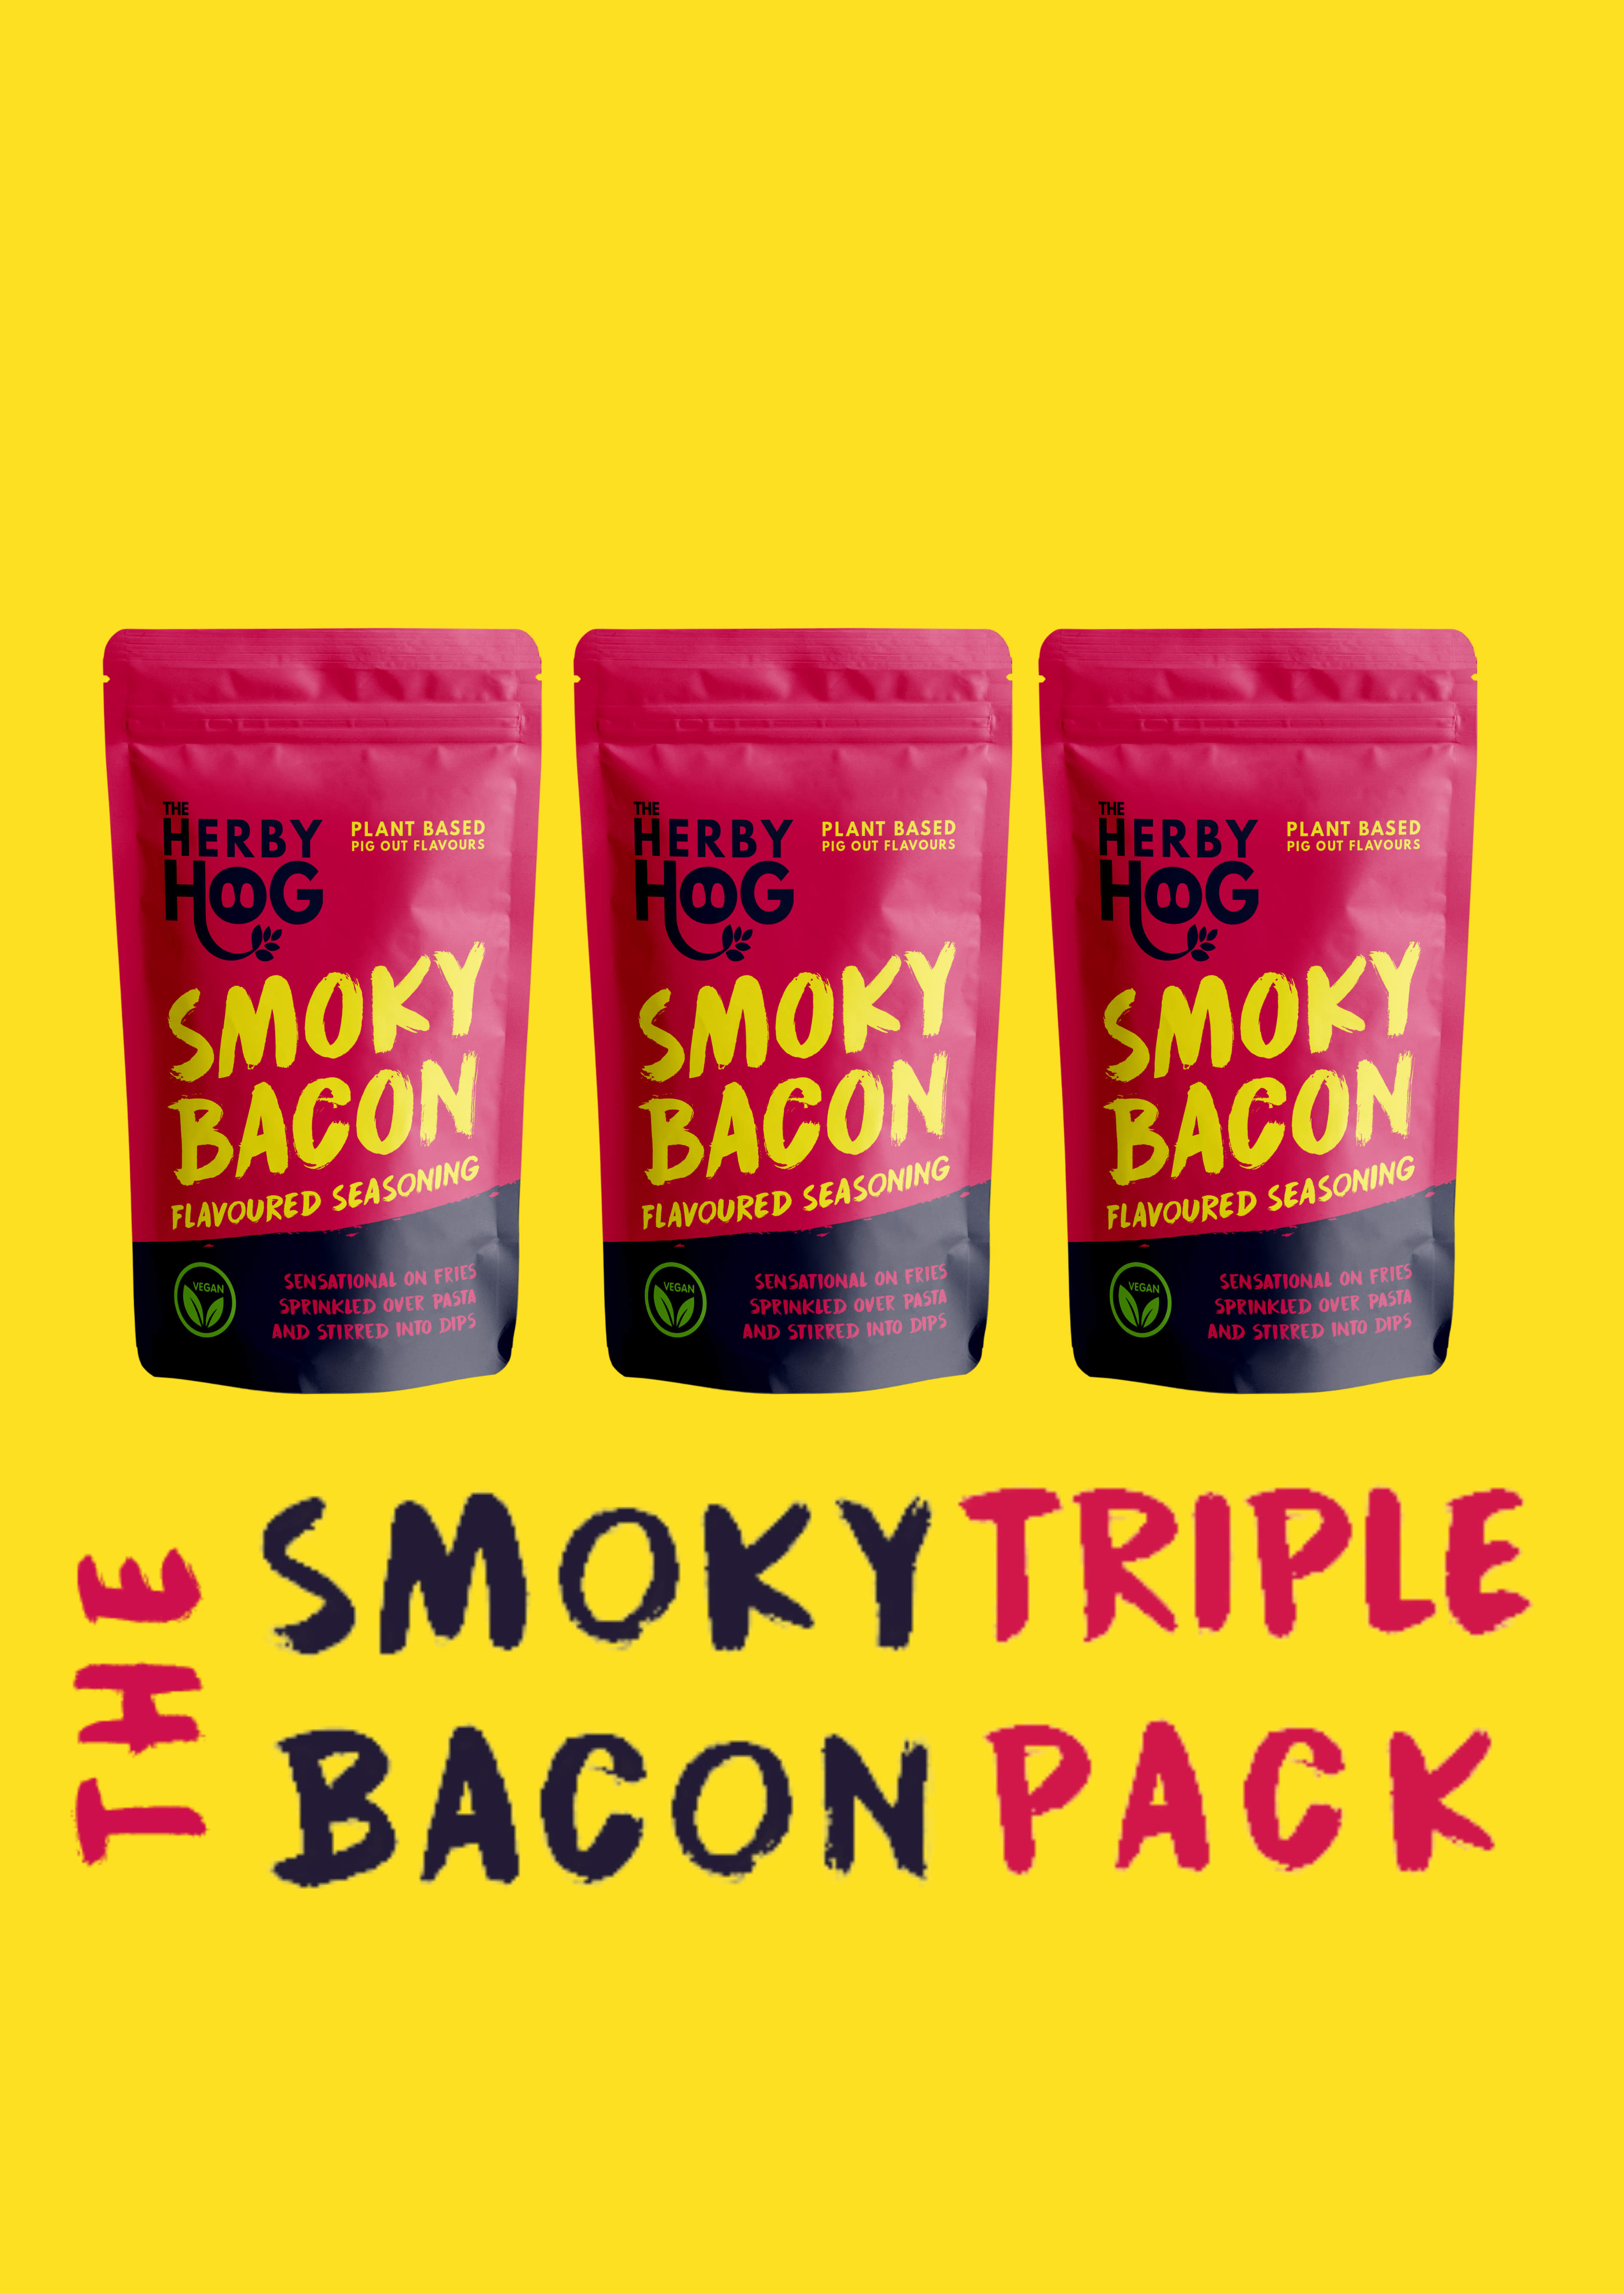 Three packs of Herby hog Smoky Bacon seasoning with the title The Smoky Bacon Triple pack